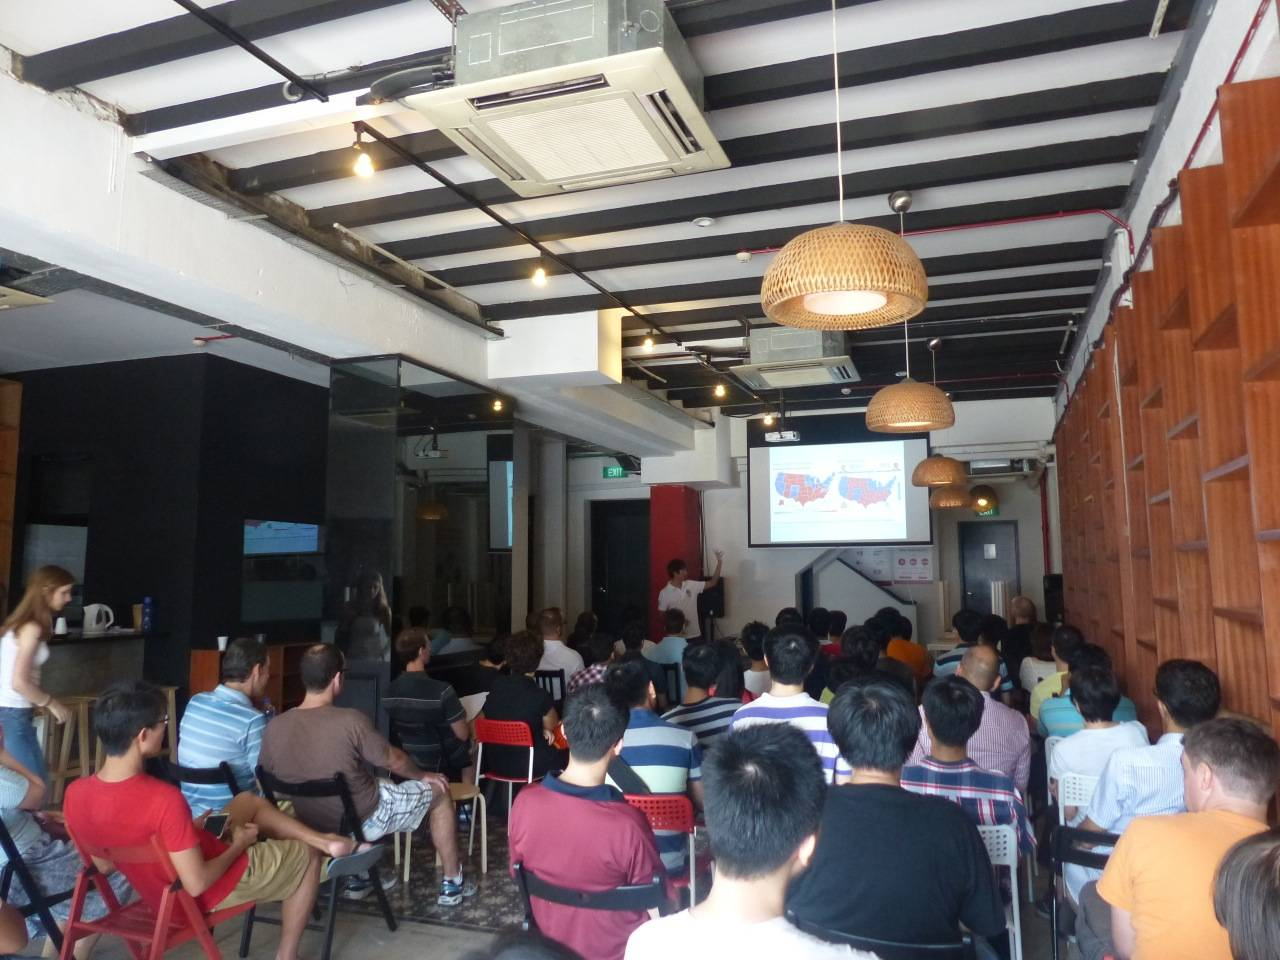 Interview with Data science expert Kai Xin Thia, Data scientist at Lazada, Co-Founder DataScience SG